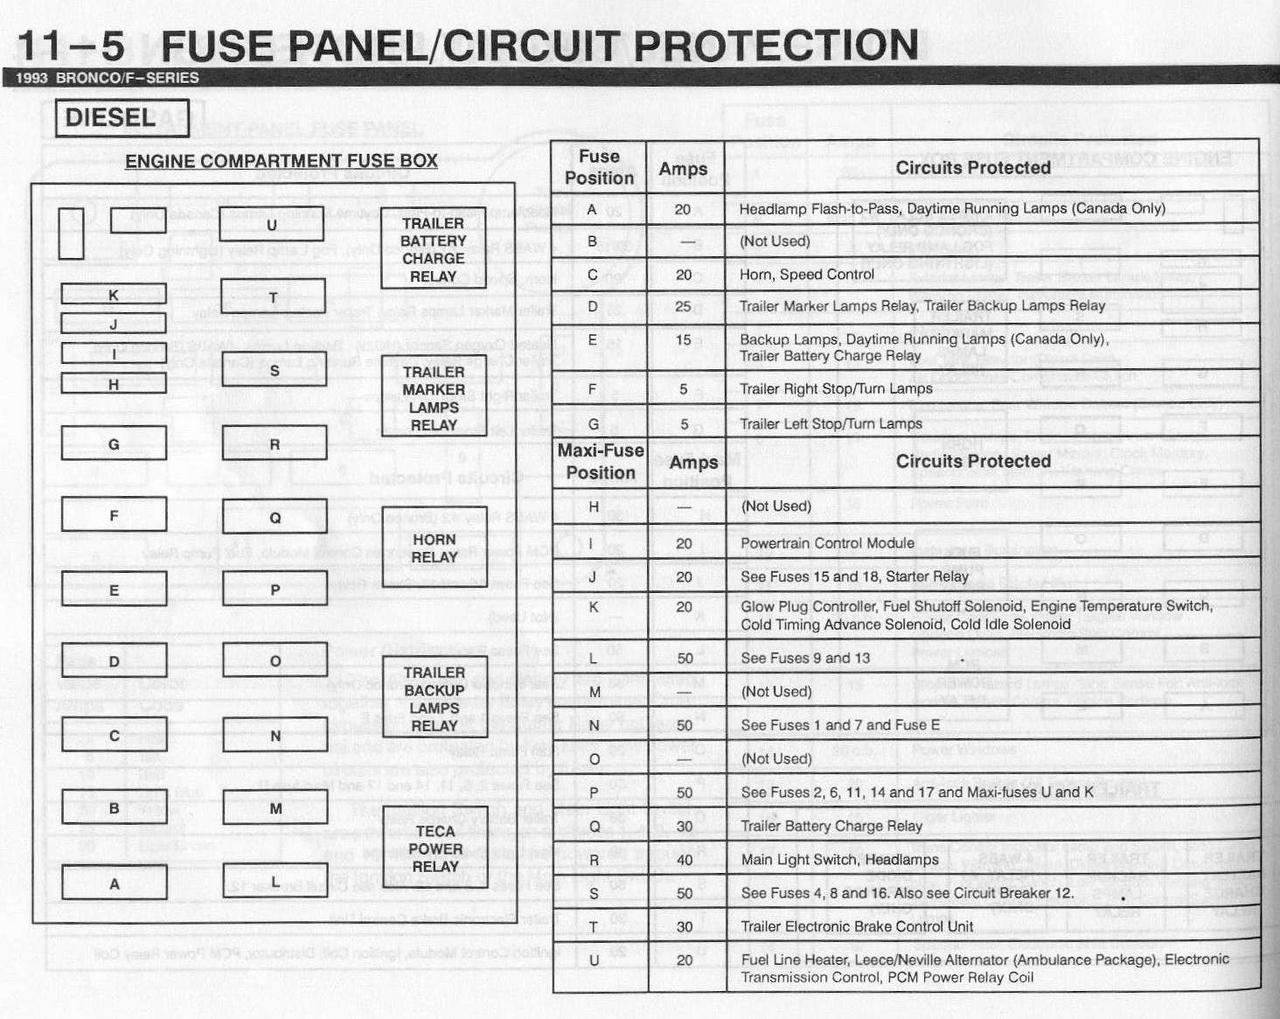 1997 F250 Fuse Box Diagram Wiring Data 1999 Silverado 1998 Ford F 250 Powerstroke